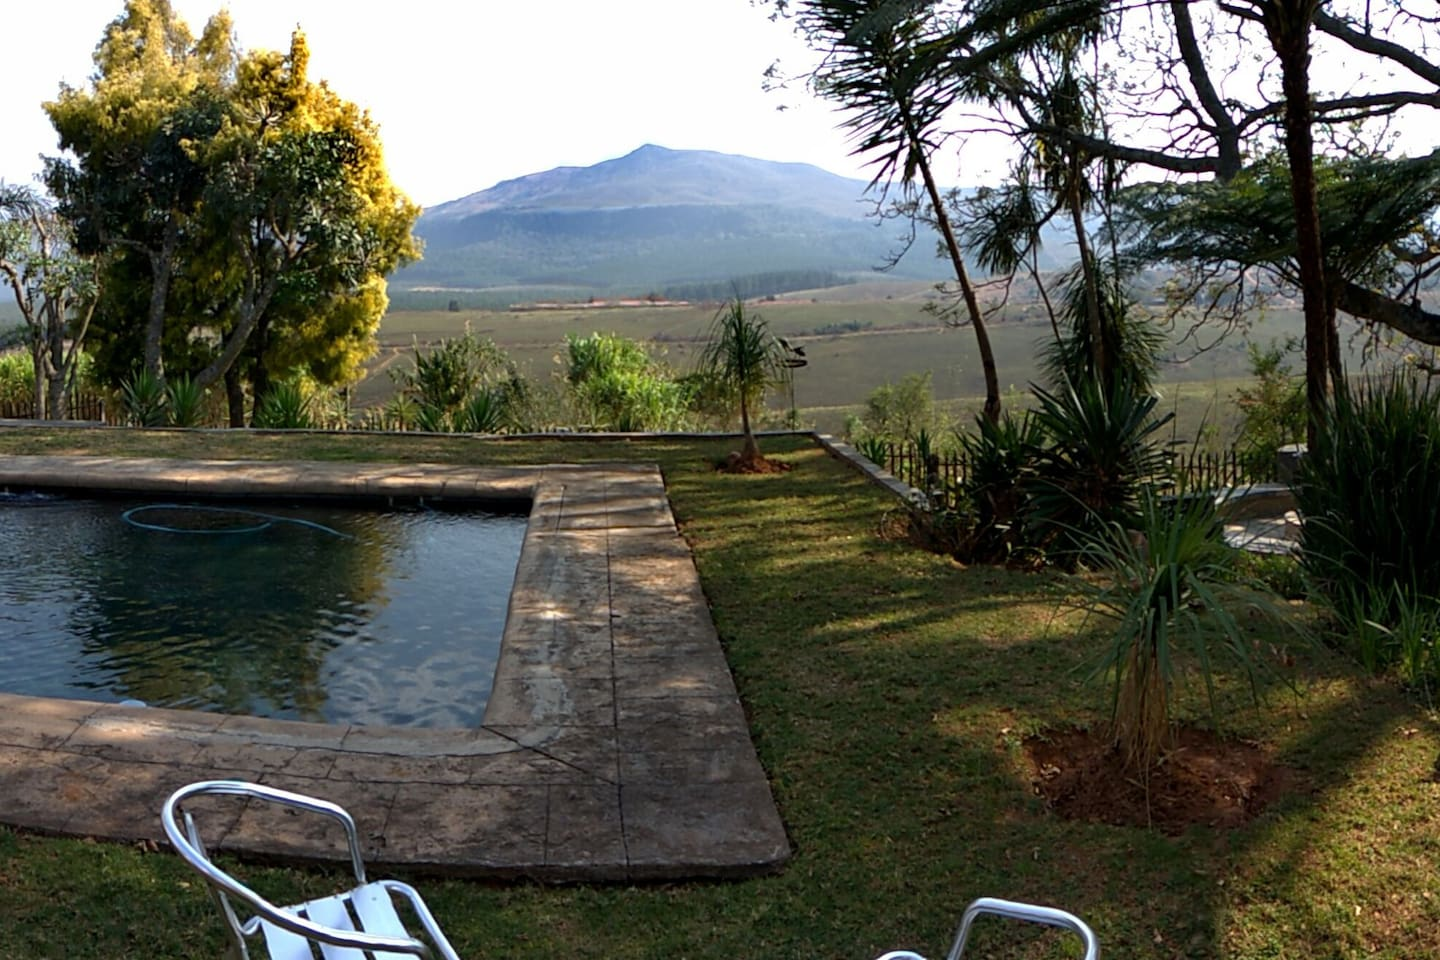 View across the valey of the mountain range, showing a section of the garden and pool.